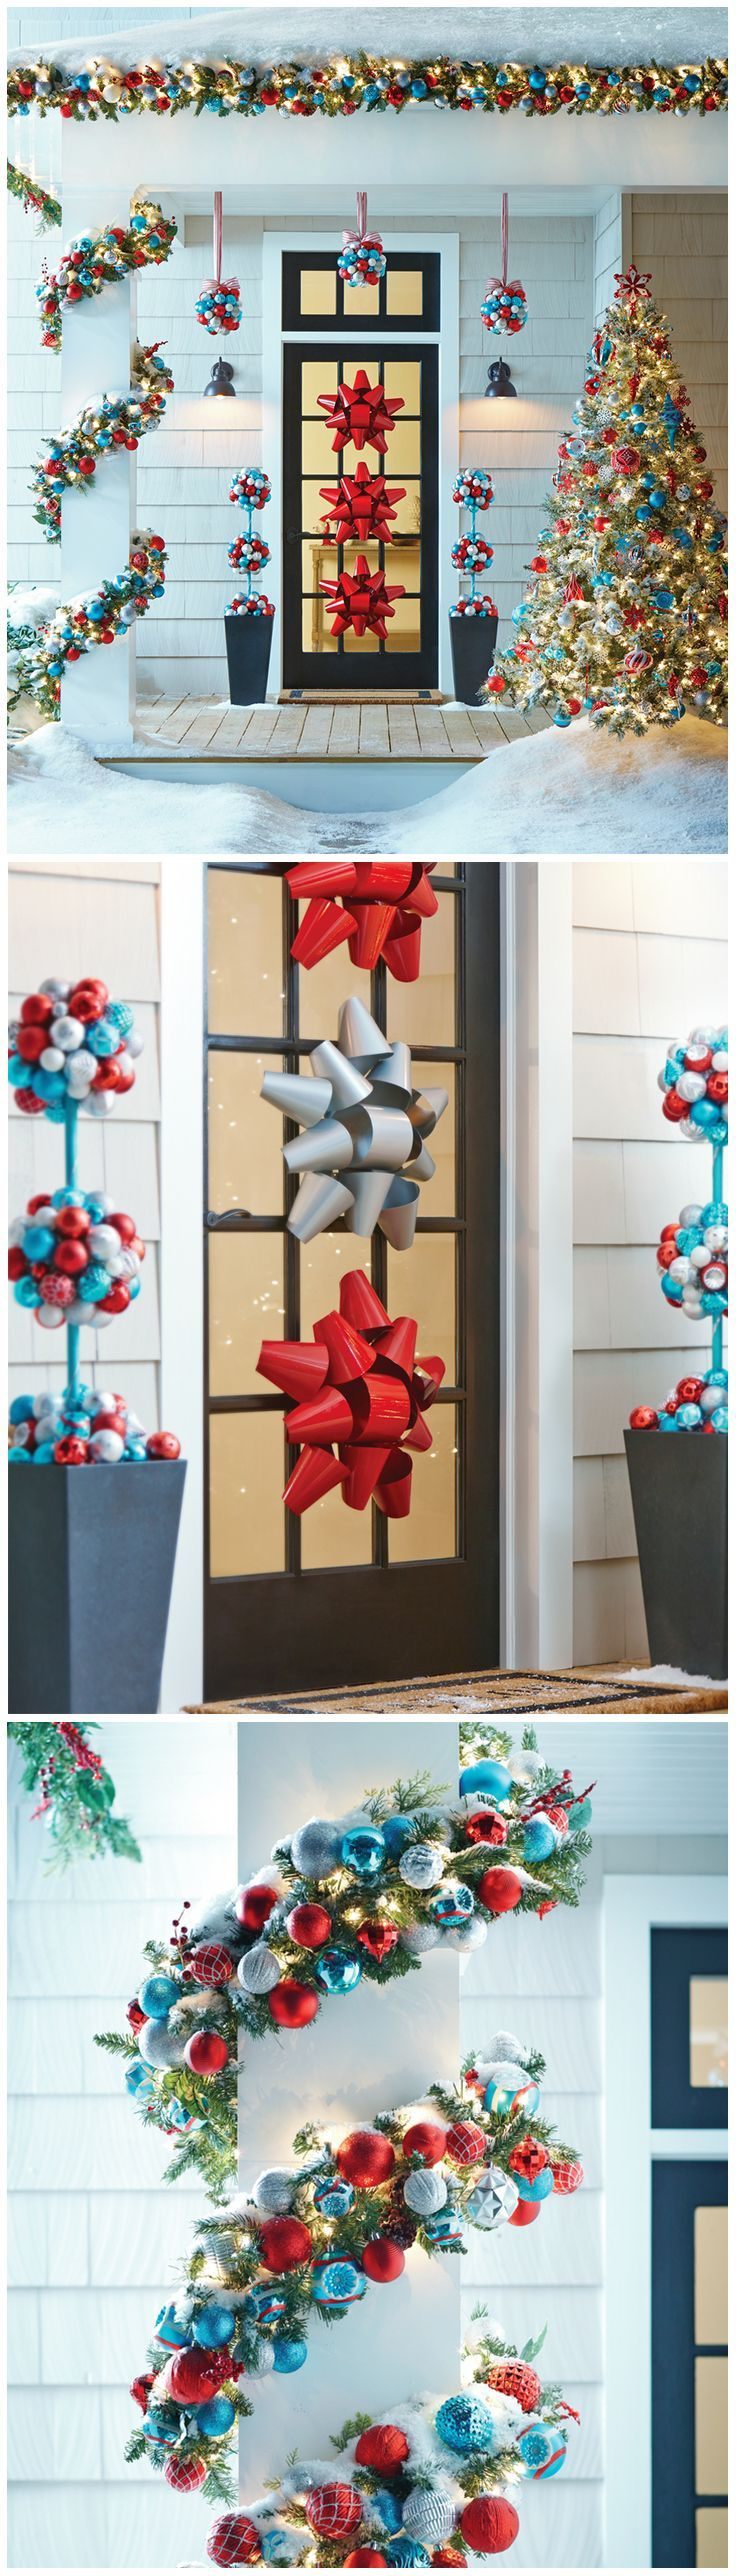 The frosty blues and silvers are warmed up by bright, festive red in these outdoor Christmas decorations from The North Pole Collection by Martha Stewart Living. It's a fun, whimsical look for the holiday season. The Home Depot has string lights, garland and wreaths to create the holiday look you're dreaming of for your front door... and throughout your home. Click through to start your holiday decor planning.